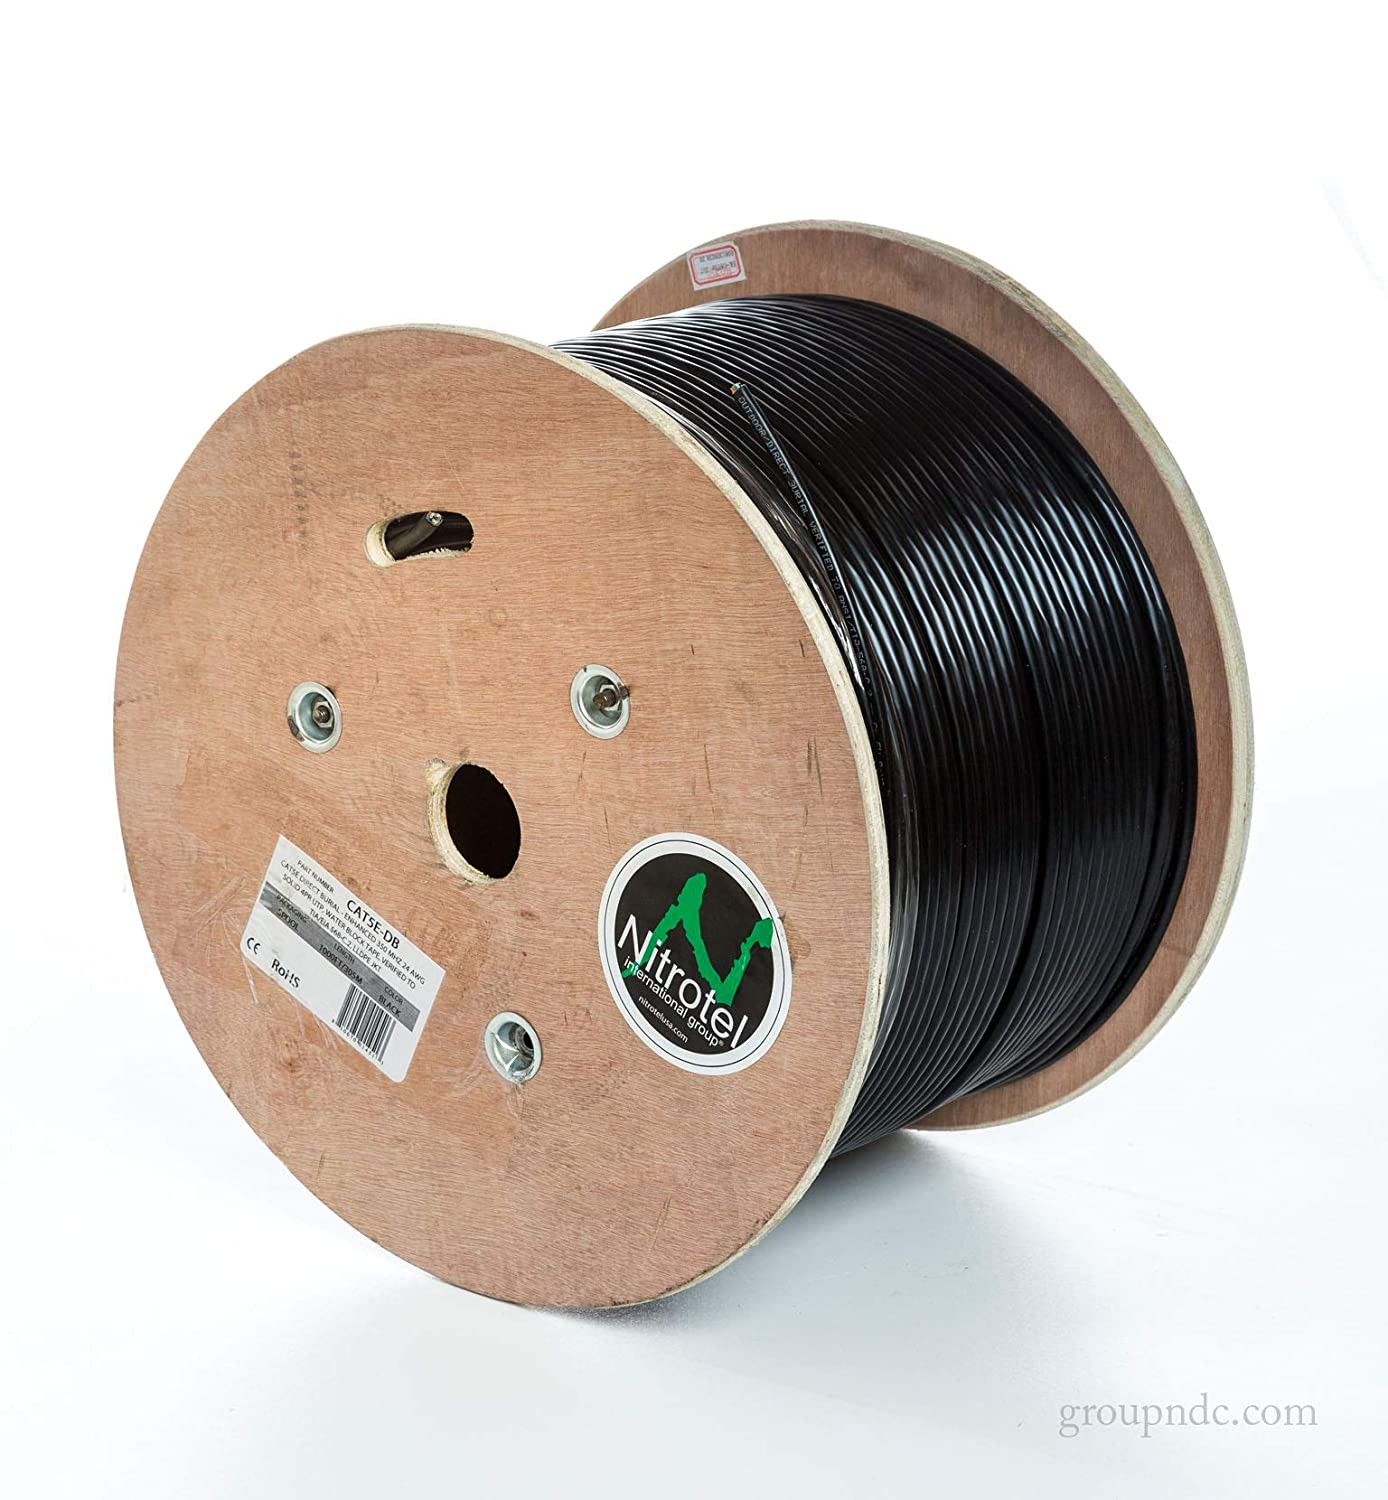 Black Nitrotel Cat 6 Enhanced F//UTP Outdoor Cable 100/% Copper 1000ft CMX Rated